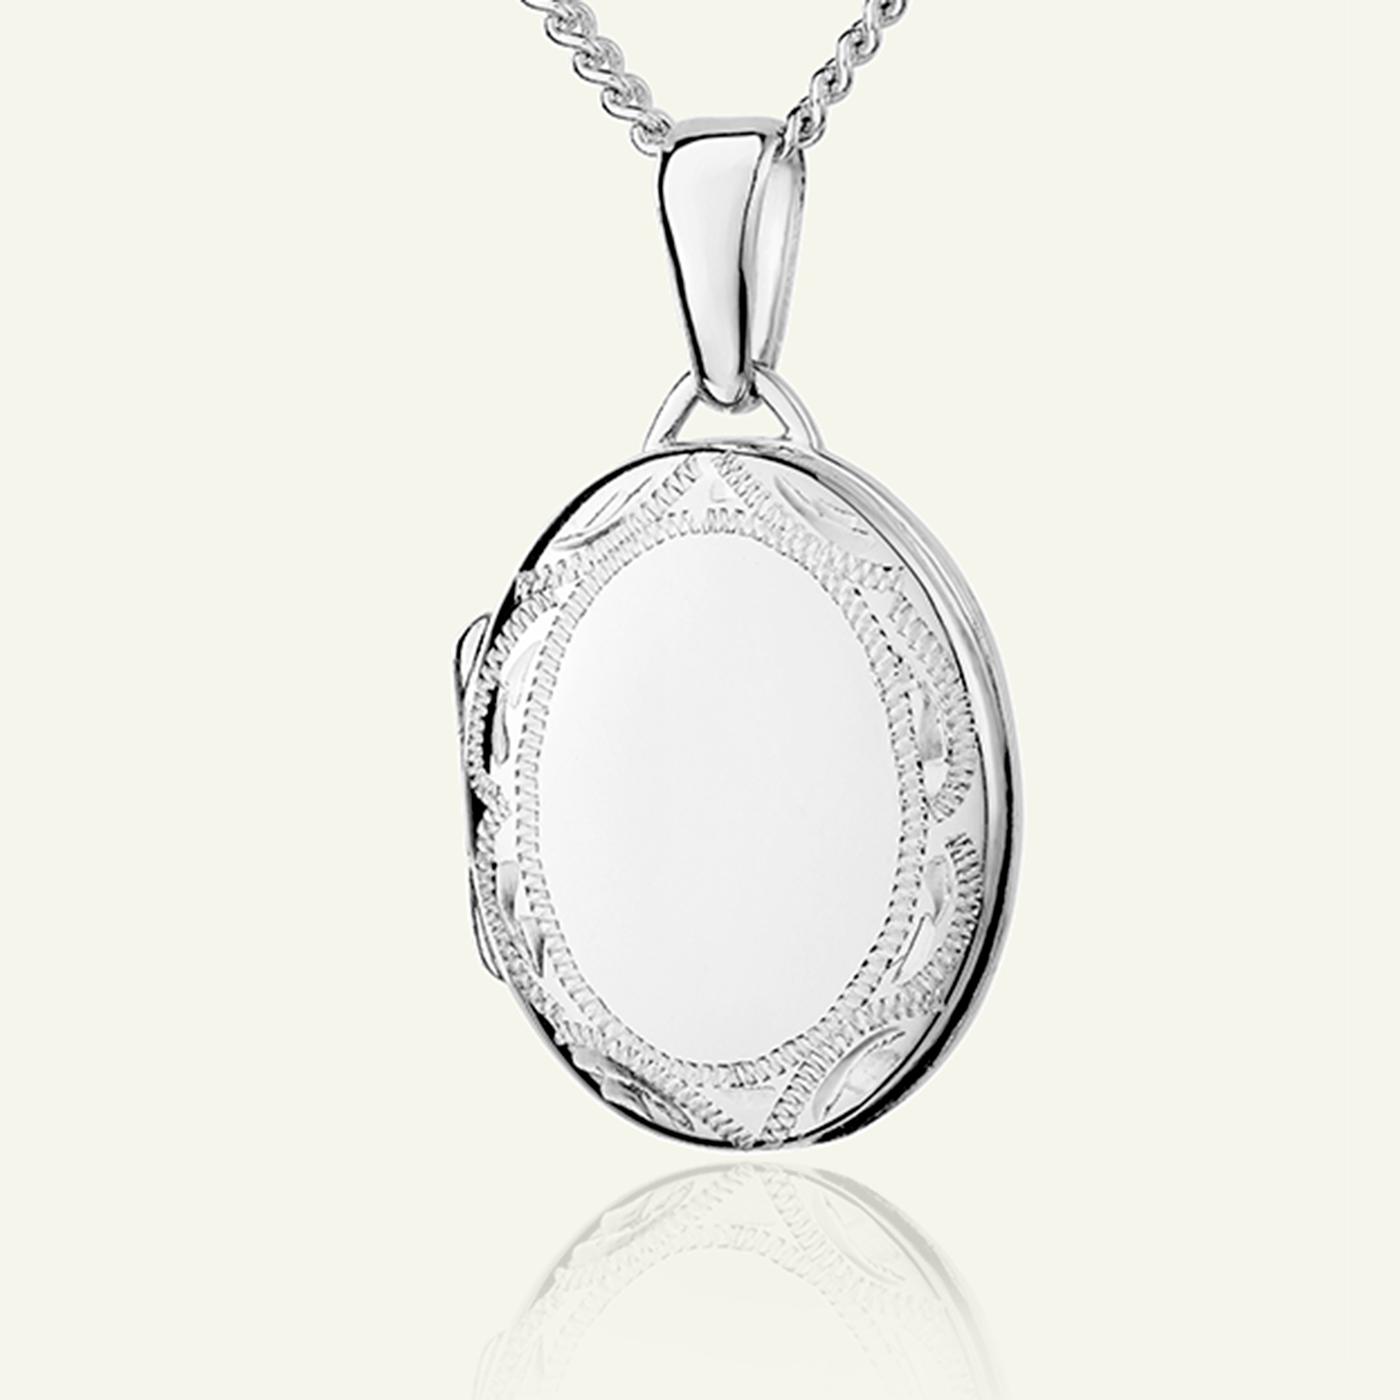 Product title: Petite White Gold Oval Border Locket, product type: Locket